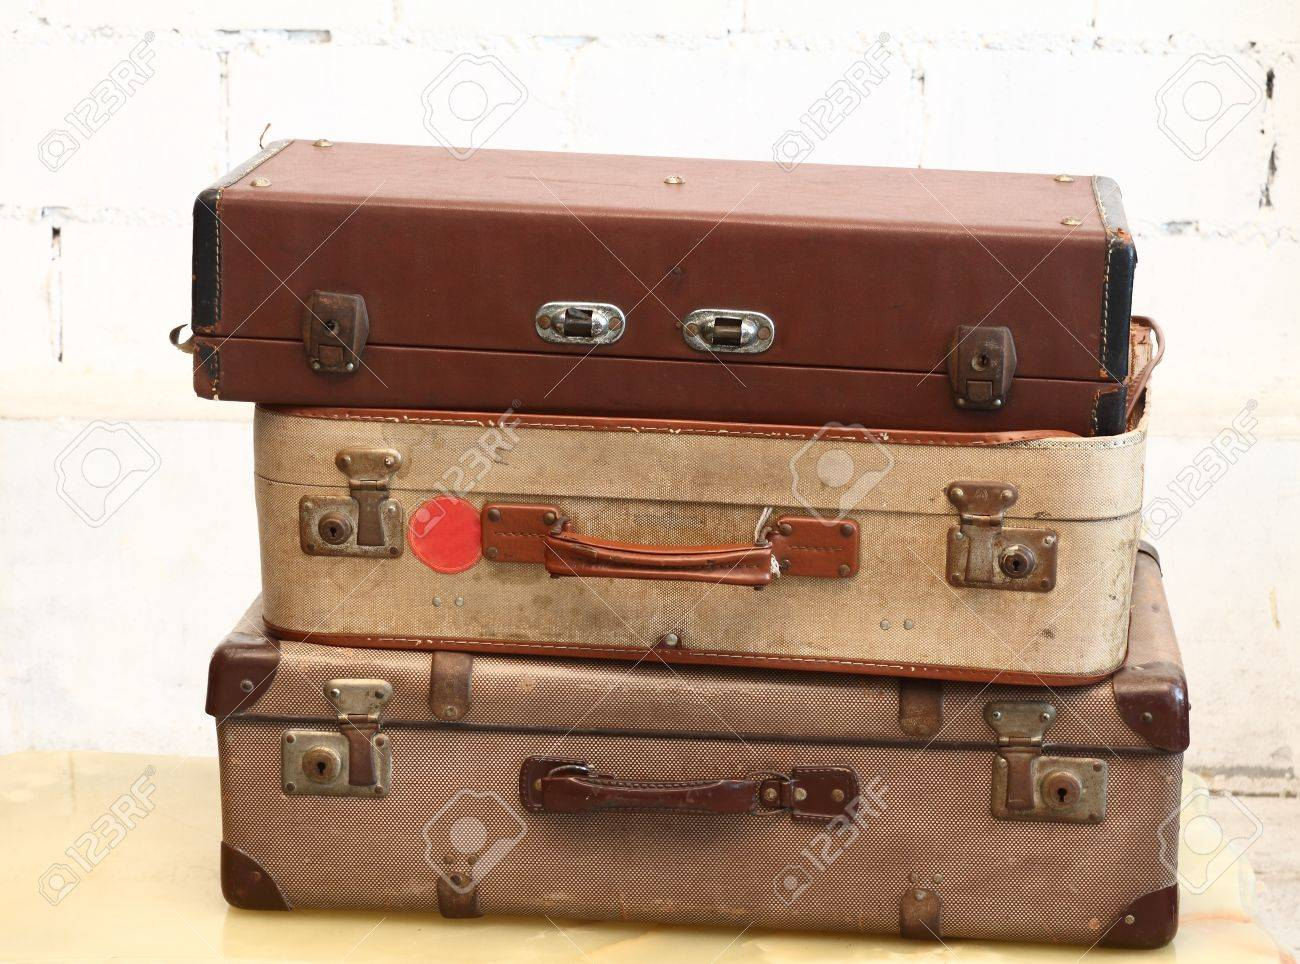 Vintage Luggage Stock Photo, Picture And Royalty Free Image. Image ...